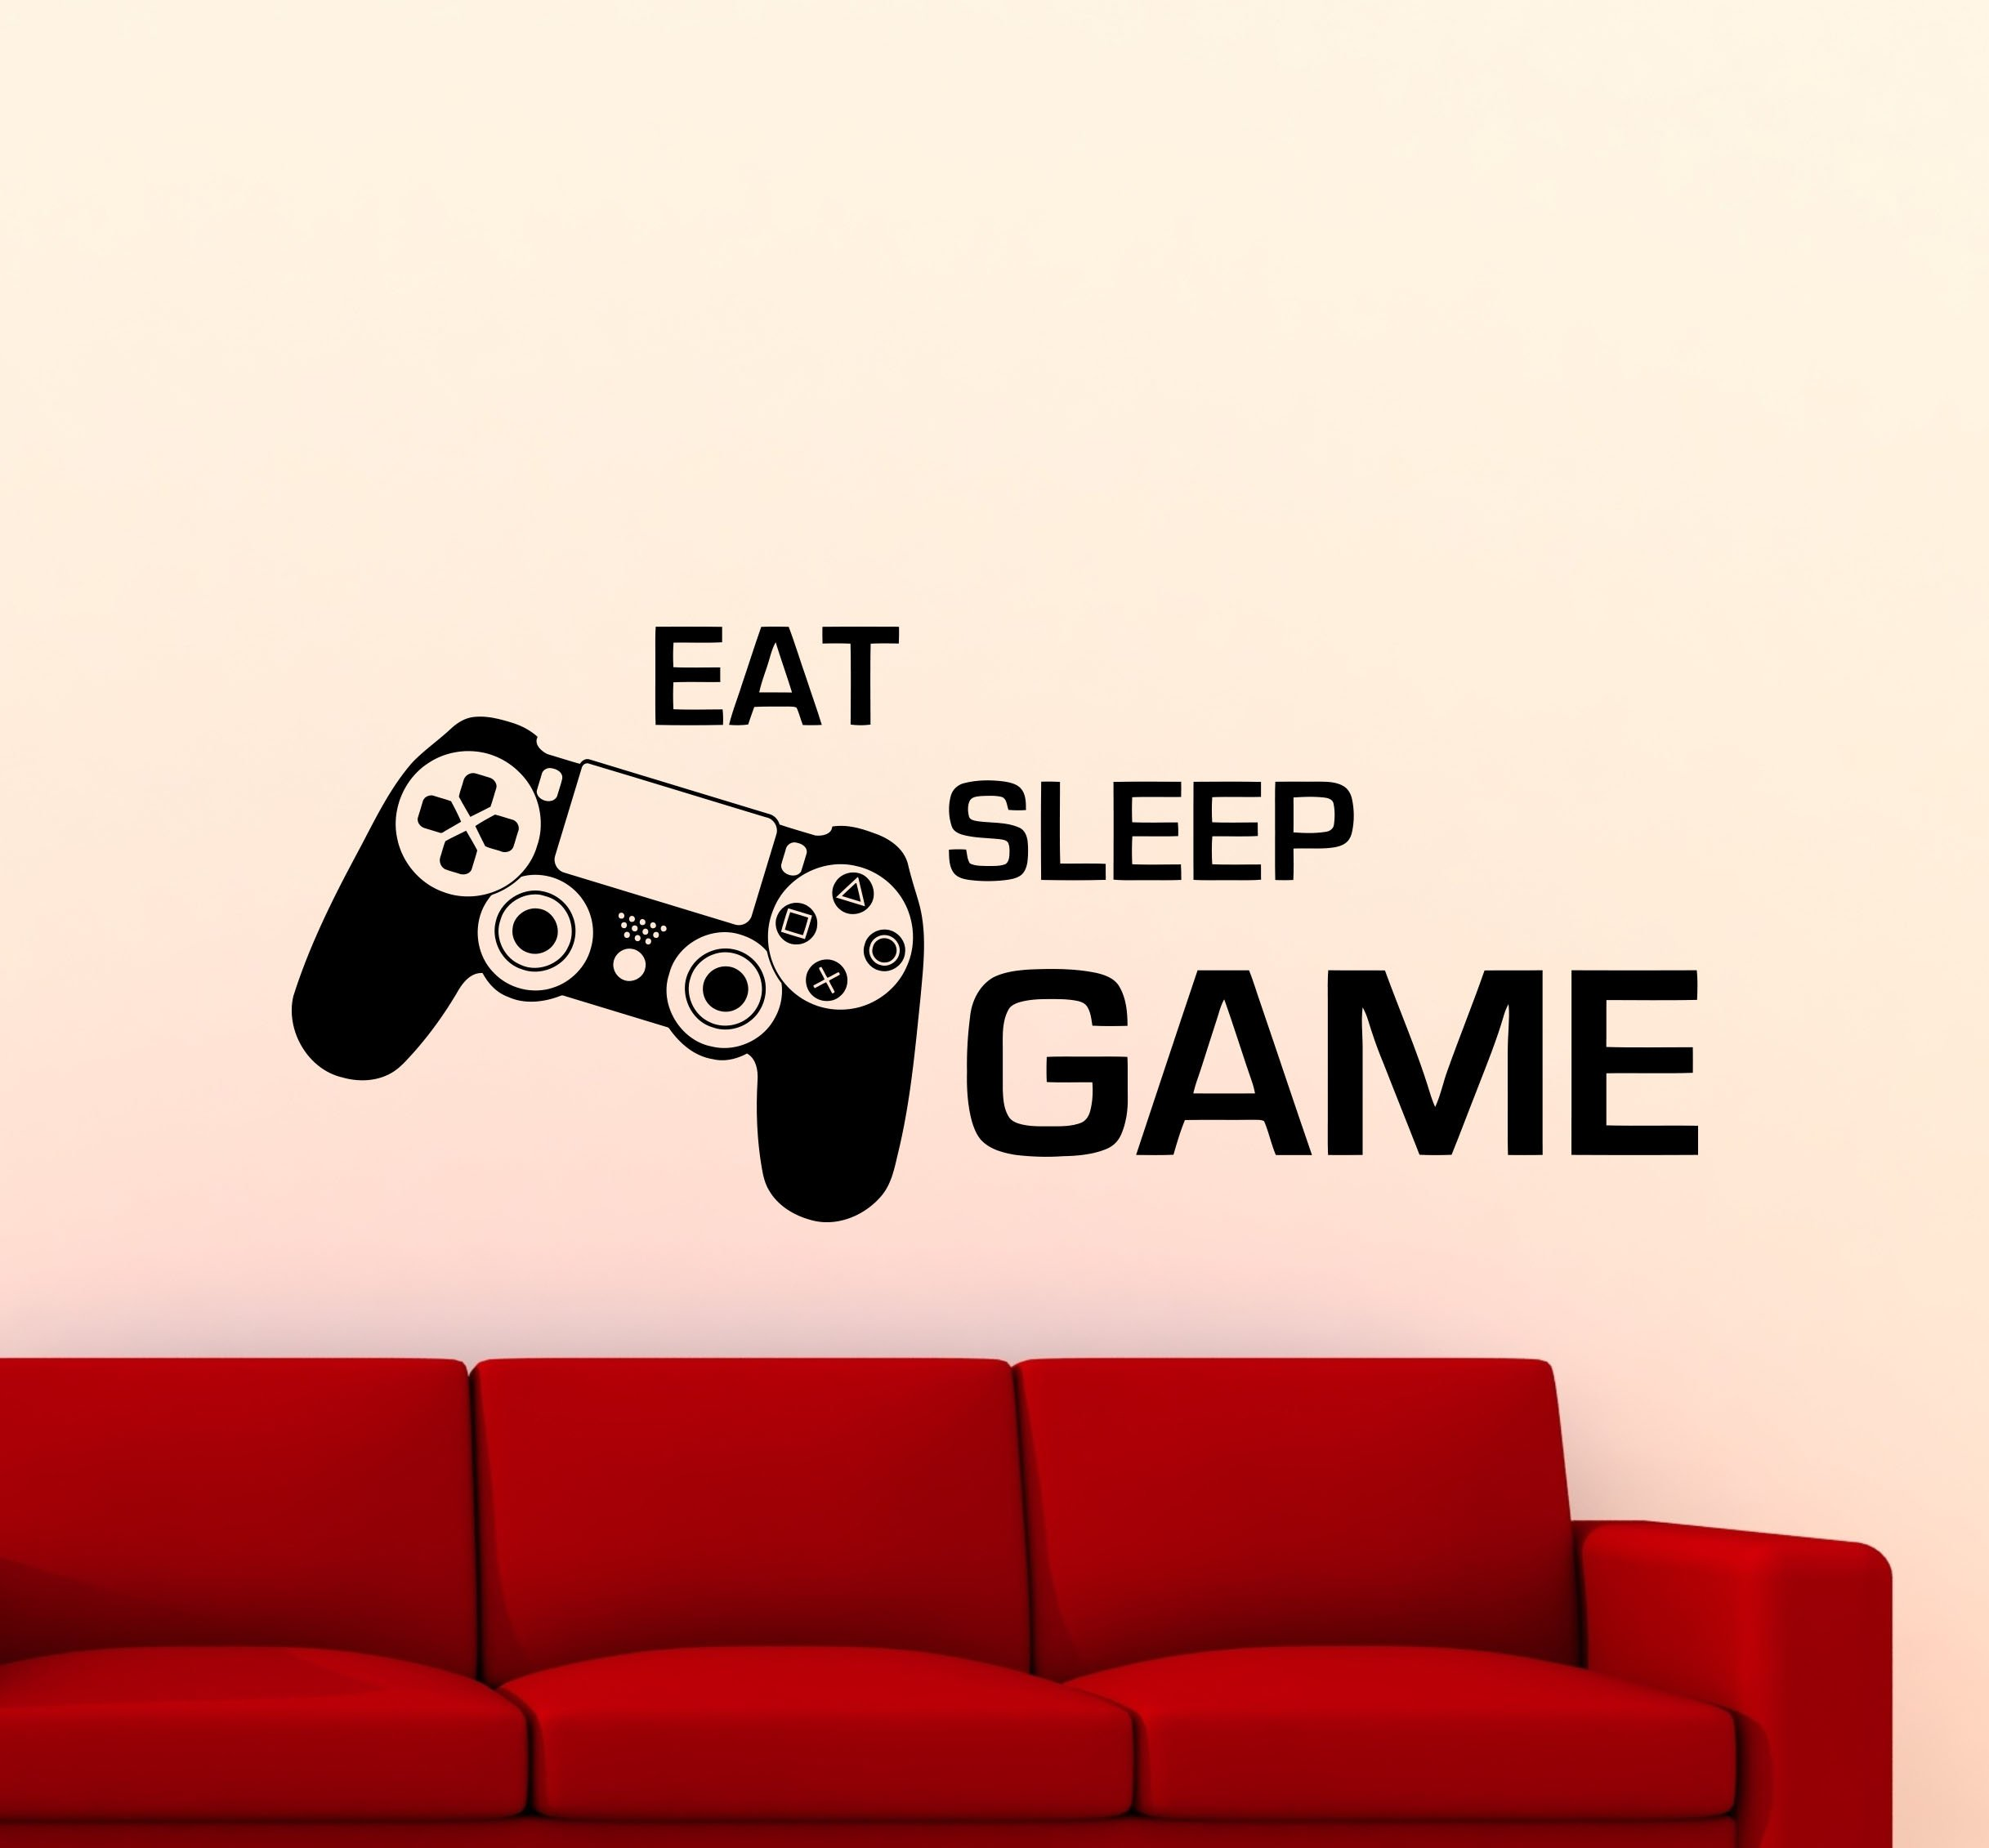 Eat Sleep Game Wall Decal PS4 Controller Gamepad Video Game Quote Playroom Gaming Lettering Gamer Gift Vinyl Sticker Home Nursery Kids Baby Room Art Stencil Decor Mural Removable Poster 118ct